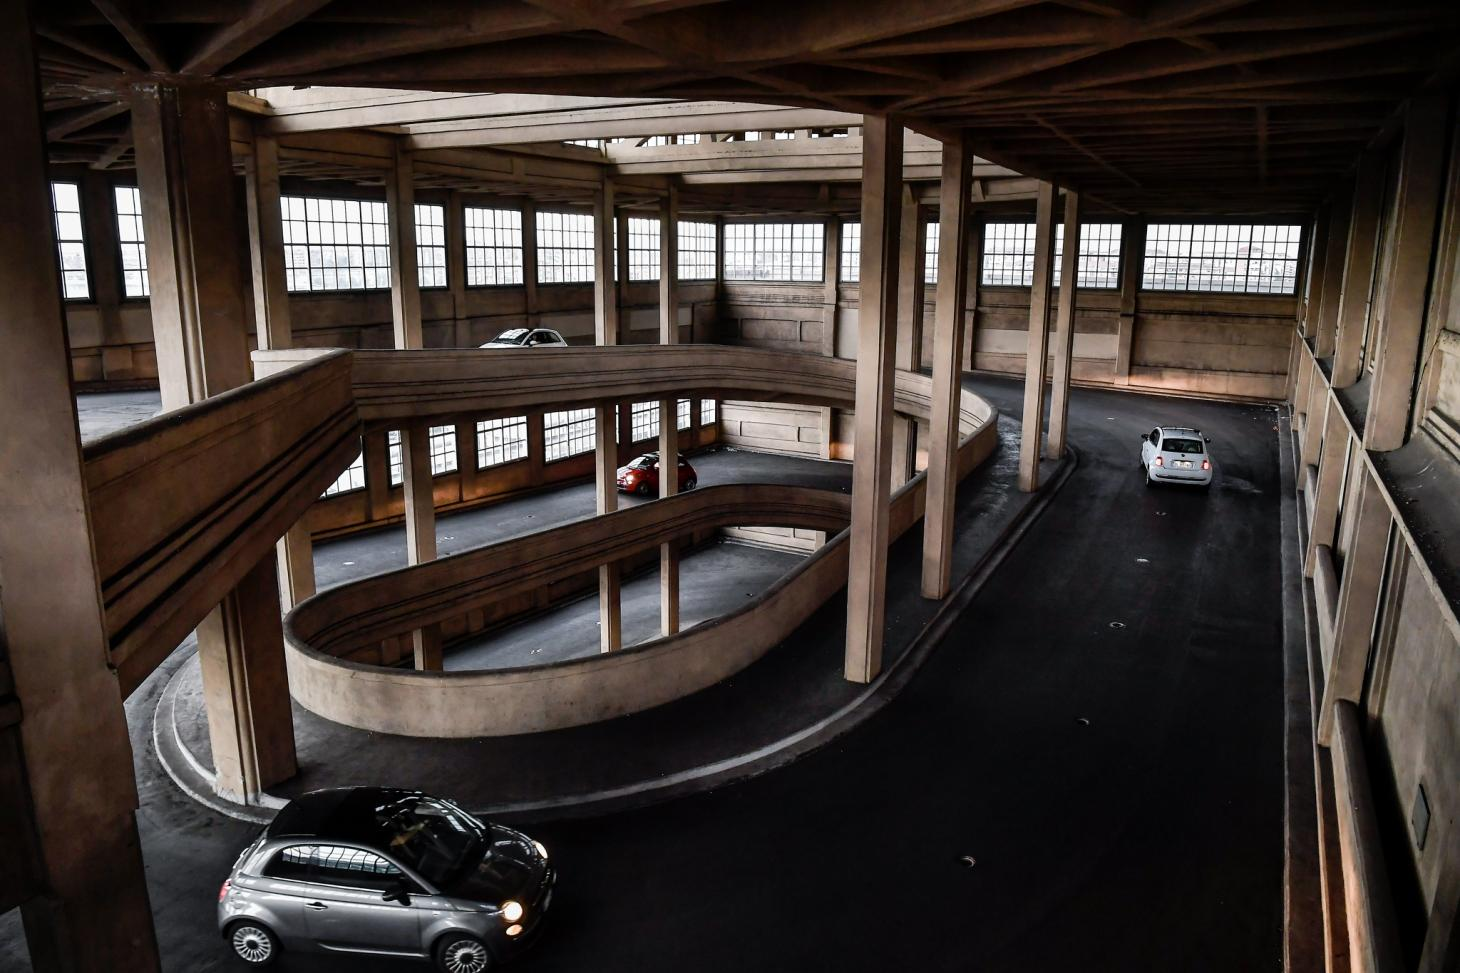 Fiat 500s take to Lingotto's concrete ramps during an event in 2019